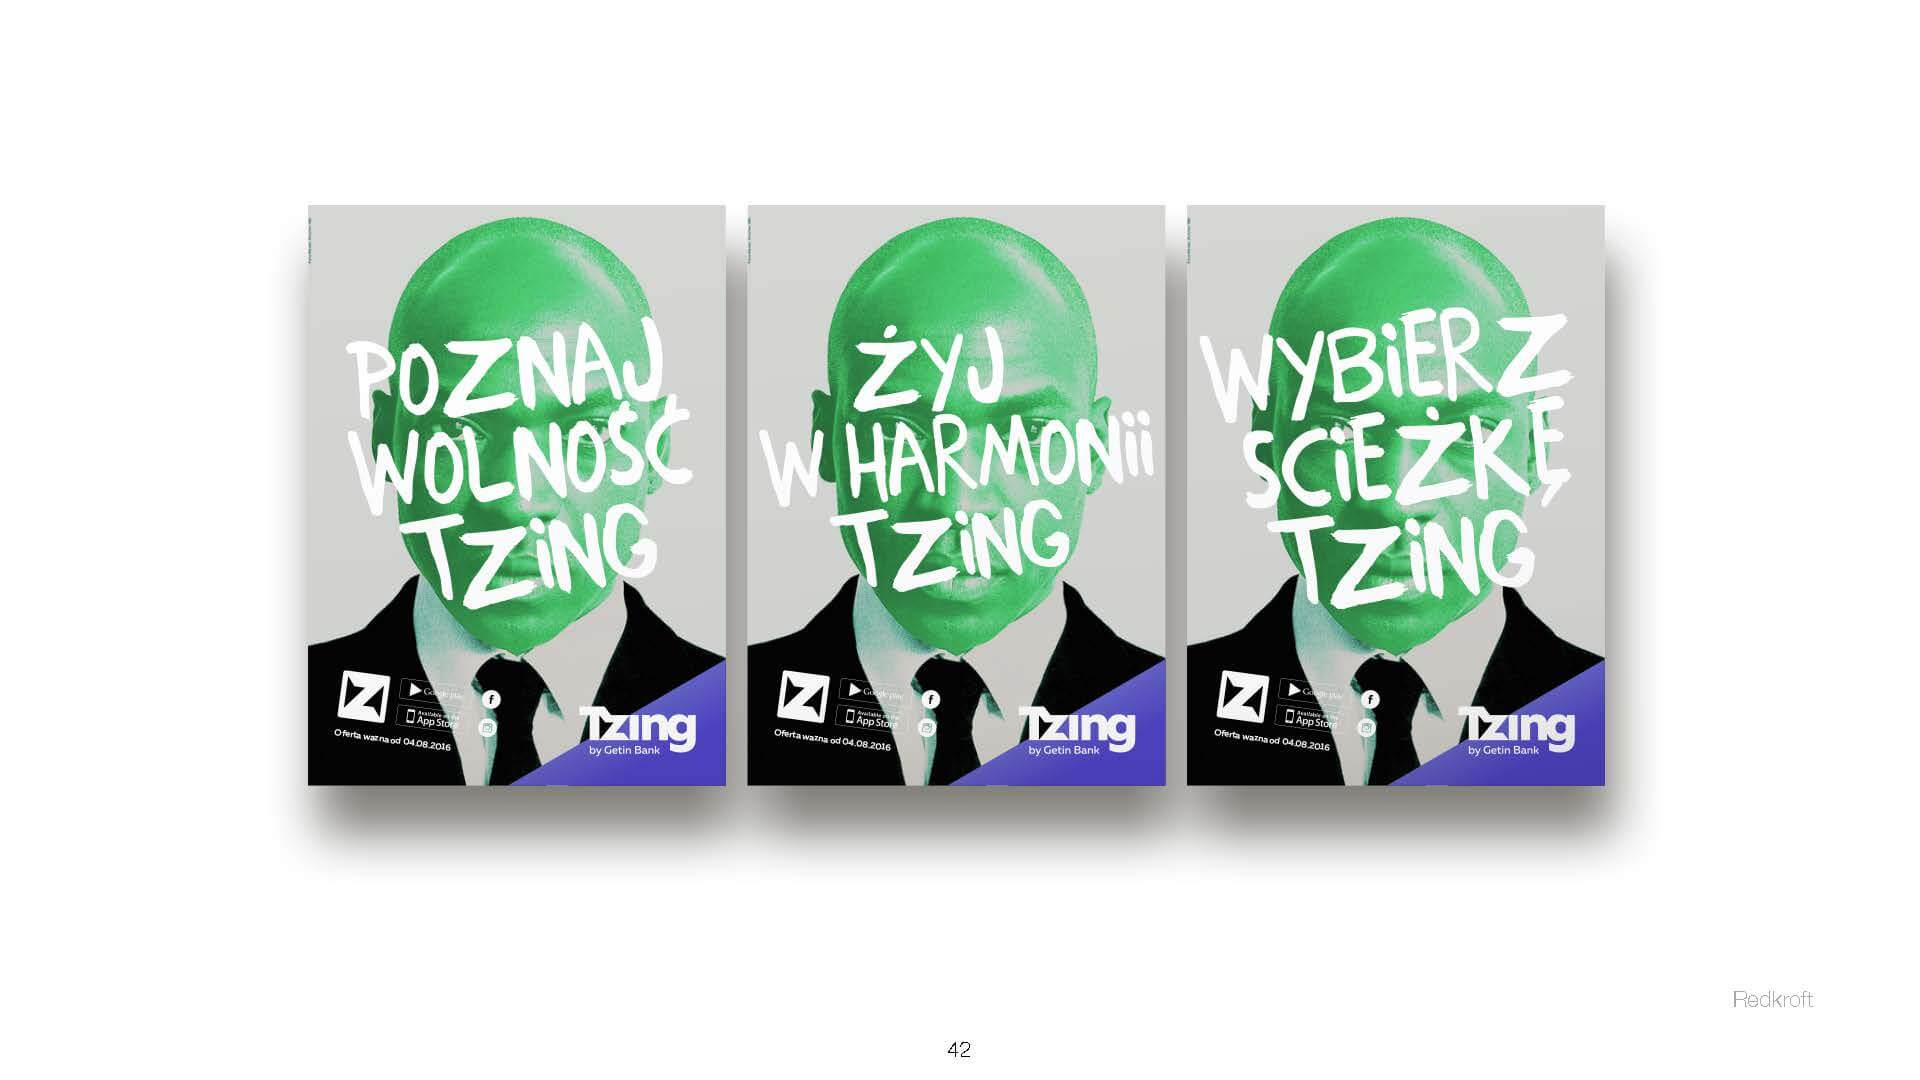 tzing_2019_Page_42